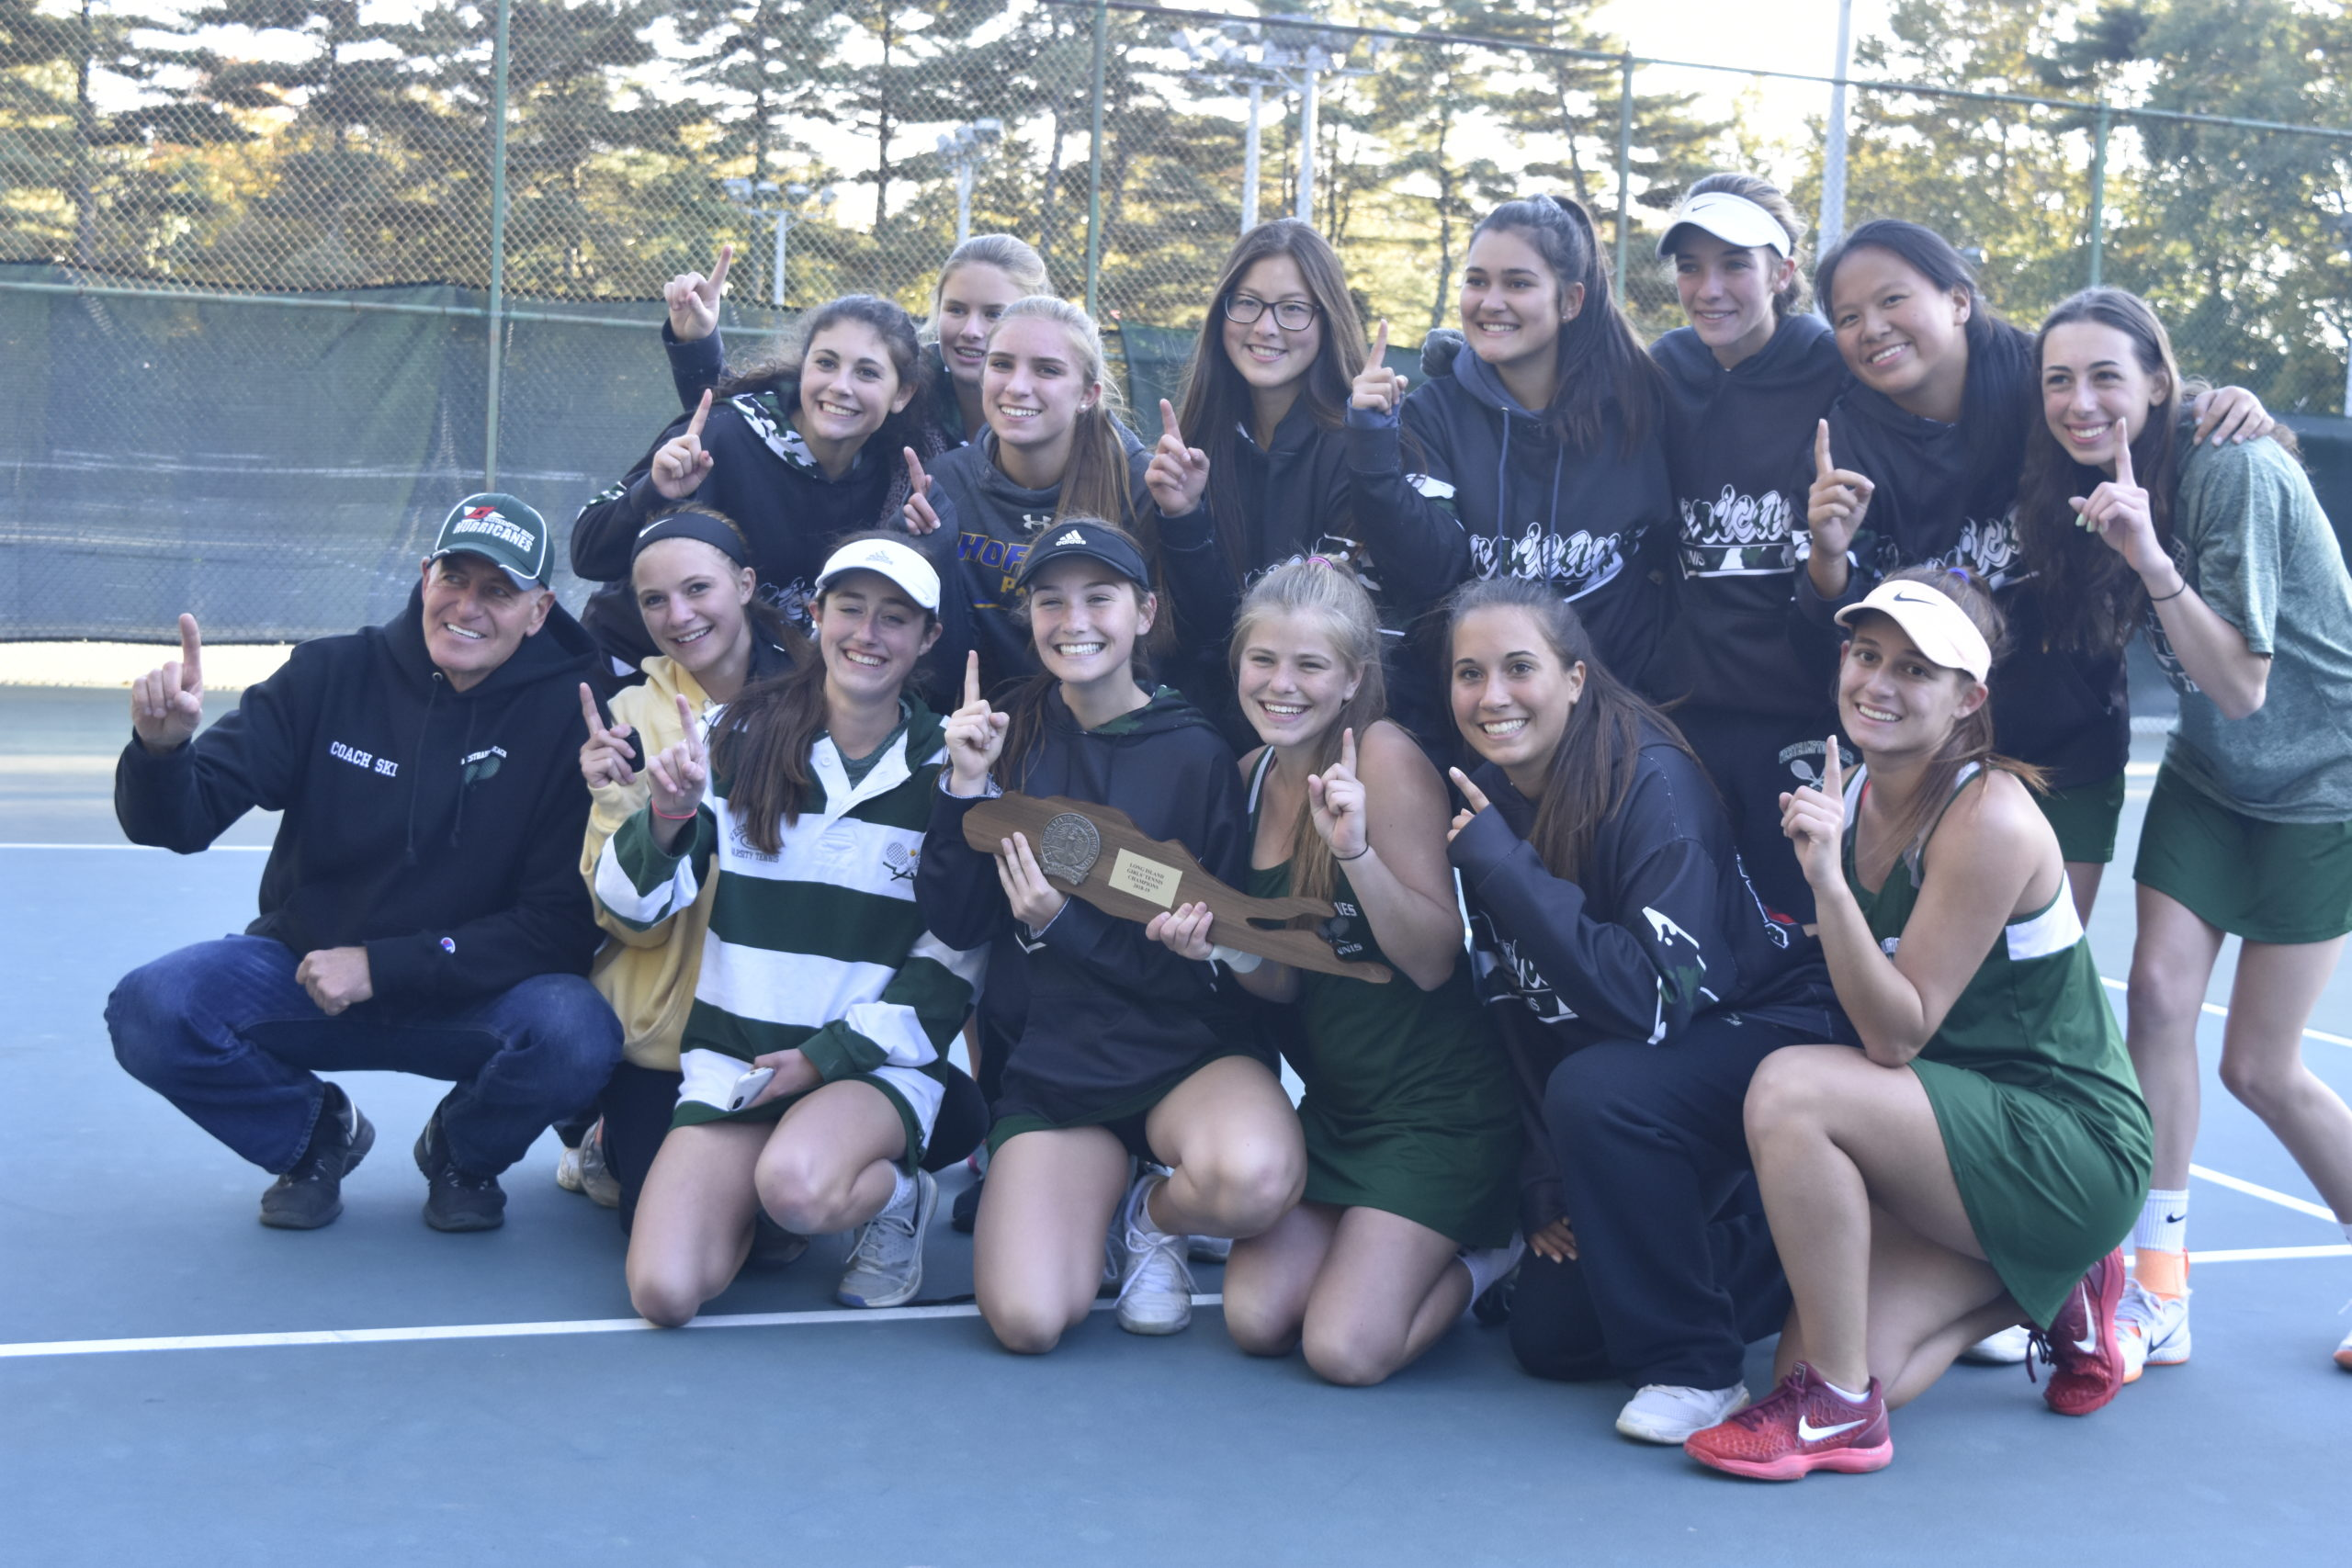 John Czartosieski, far left, led the Westhampton Beach girls tennis team to a Long Island Championship in 2018, the first team in Suffolk County to ever to do so.